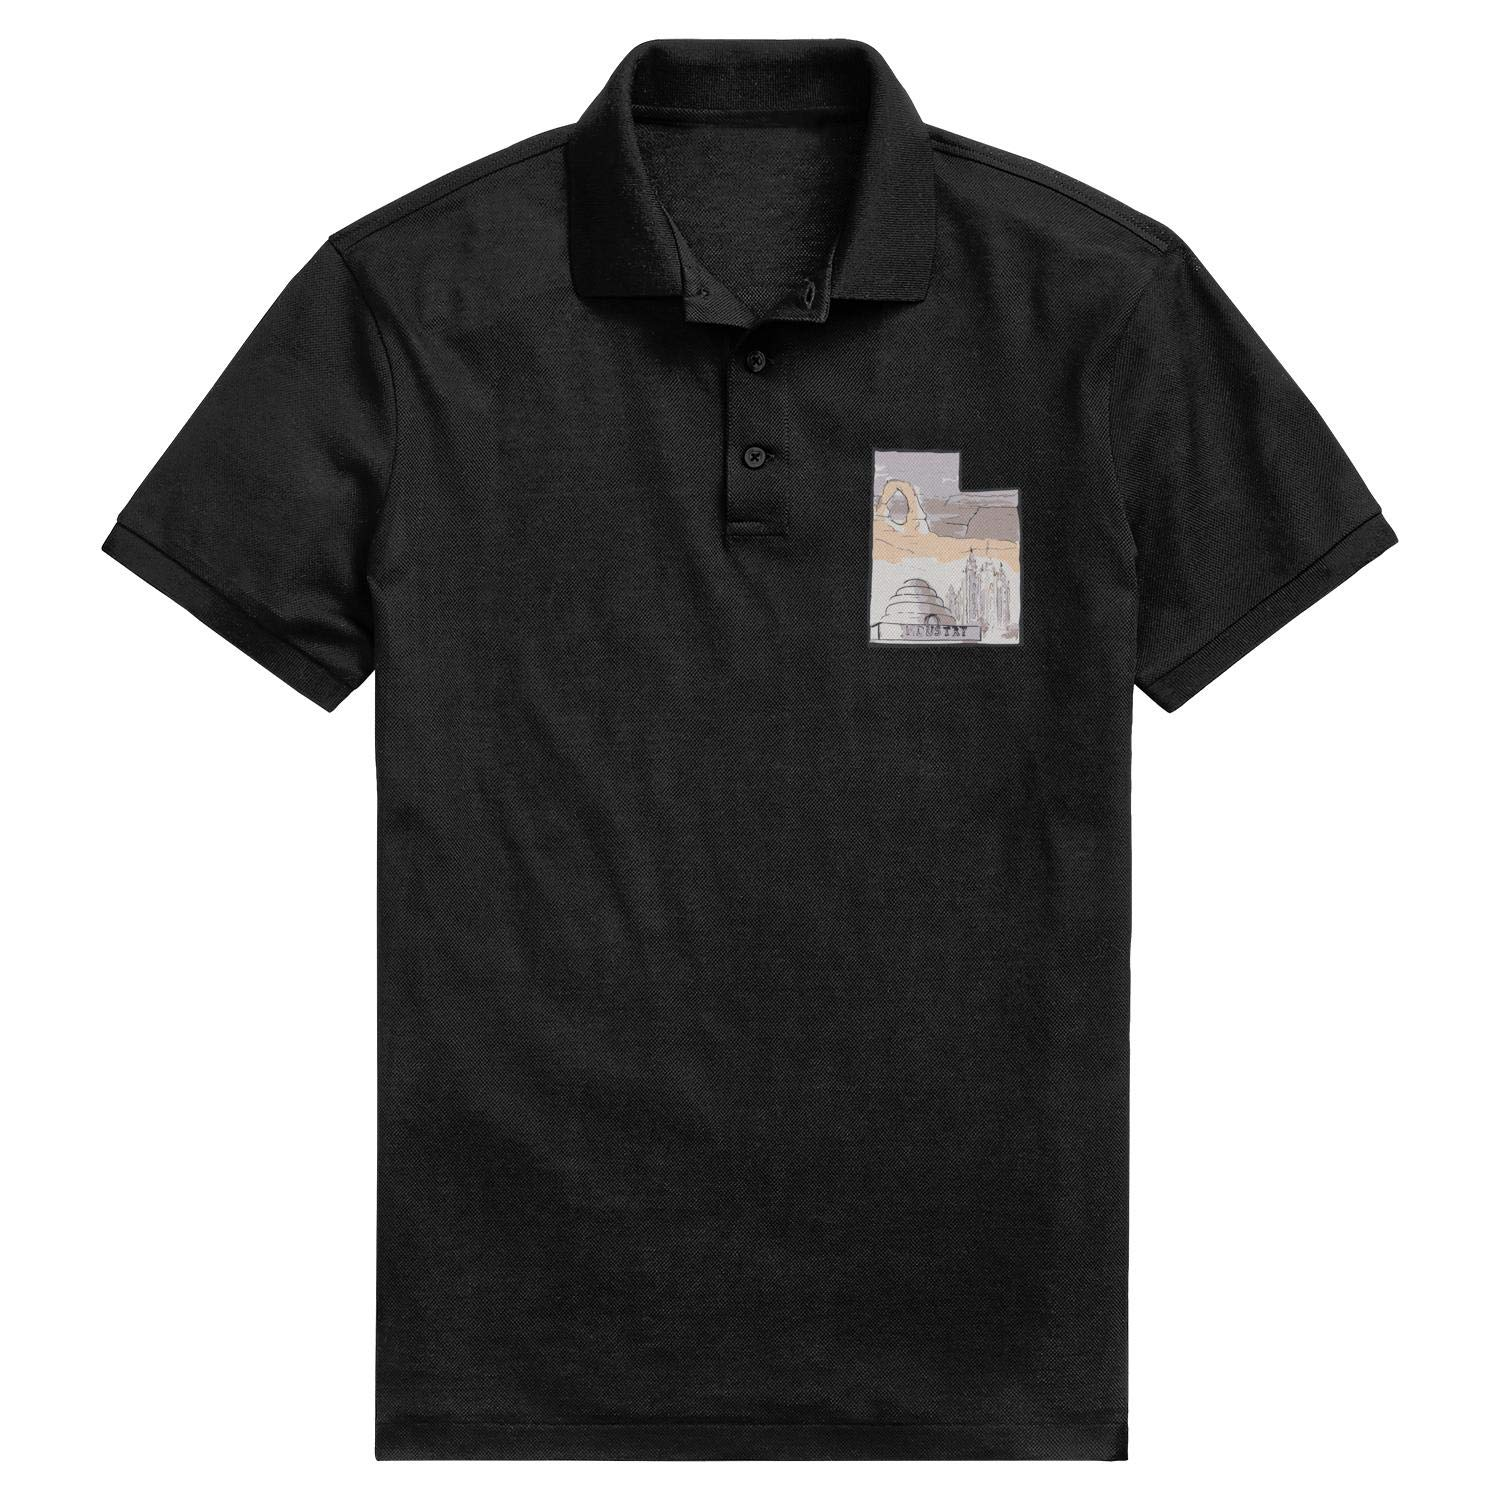 Godfer Arabe Utah Badge Short Sleeve Classic Polo T-Shirts for Men